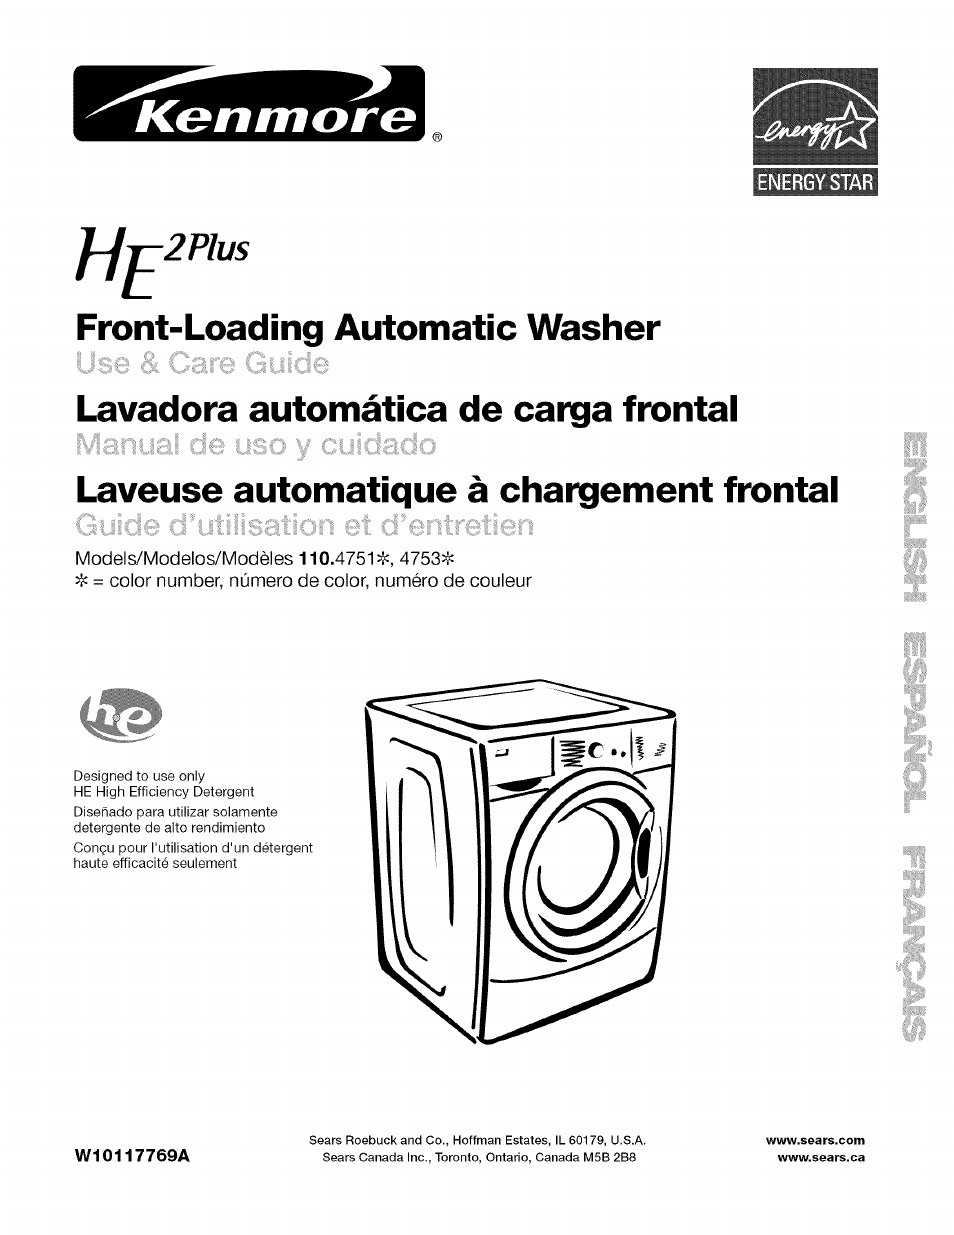 kenmore he2 plus user manual 80 pages also for he2plus 110 4751 rh manualsdir com Kenmore HE2 Plus Manual Clean Cycle Kenmore HE2 Plus Parts Manual